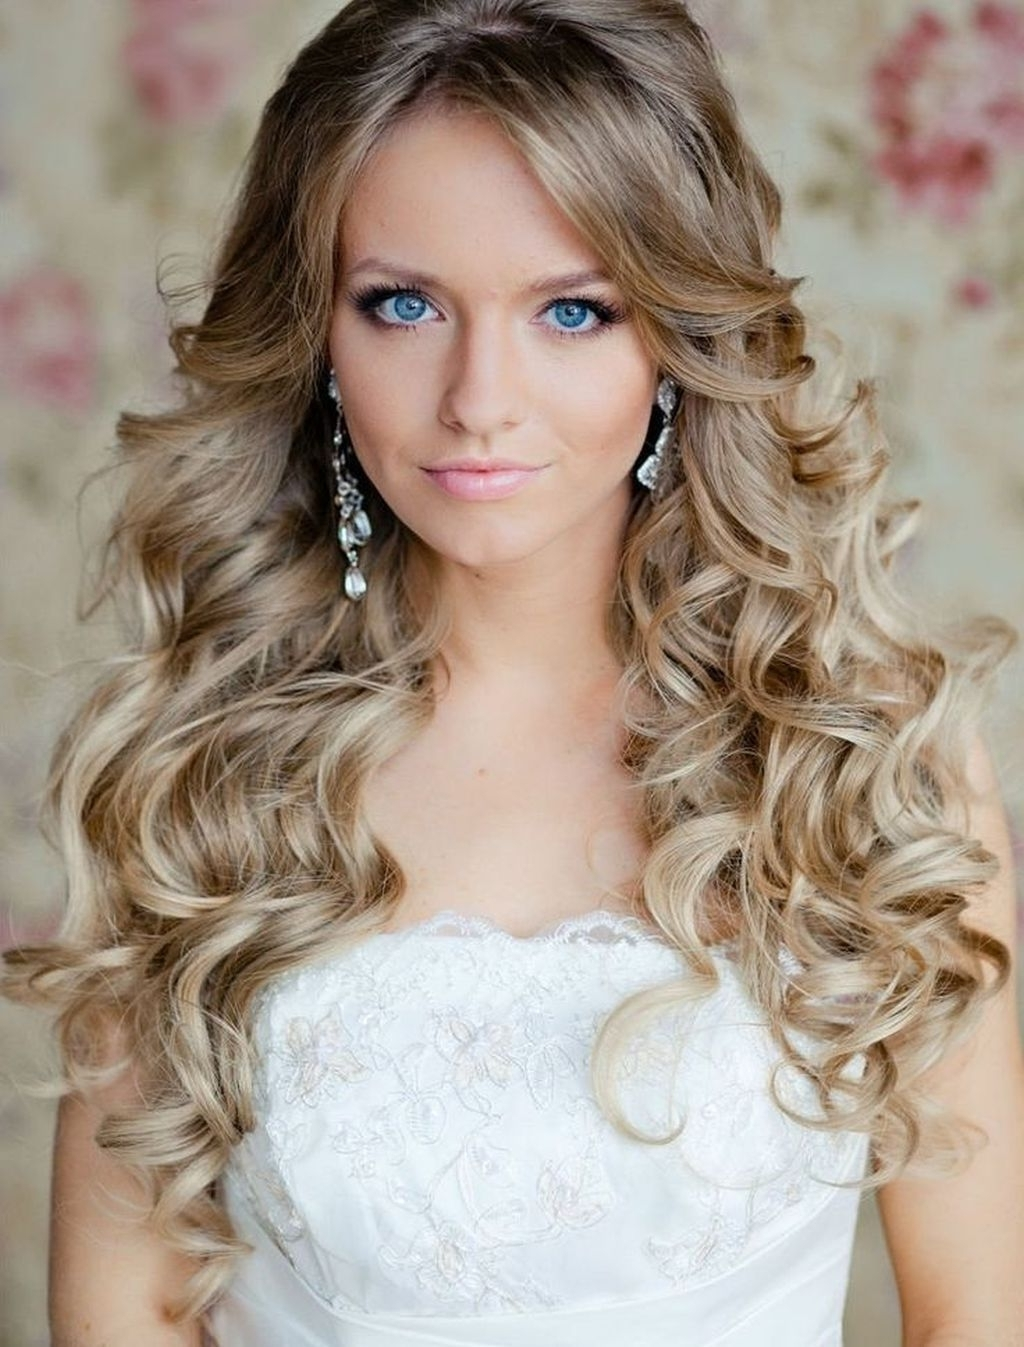 2018 Wedding Hairstyles For Long Blonde Hair For Wedding Hairstyles For Long Blonde Hairstyle Wedding Hairstyles For (View 1 of 15)